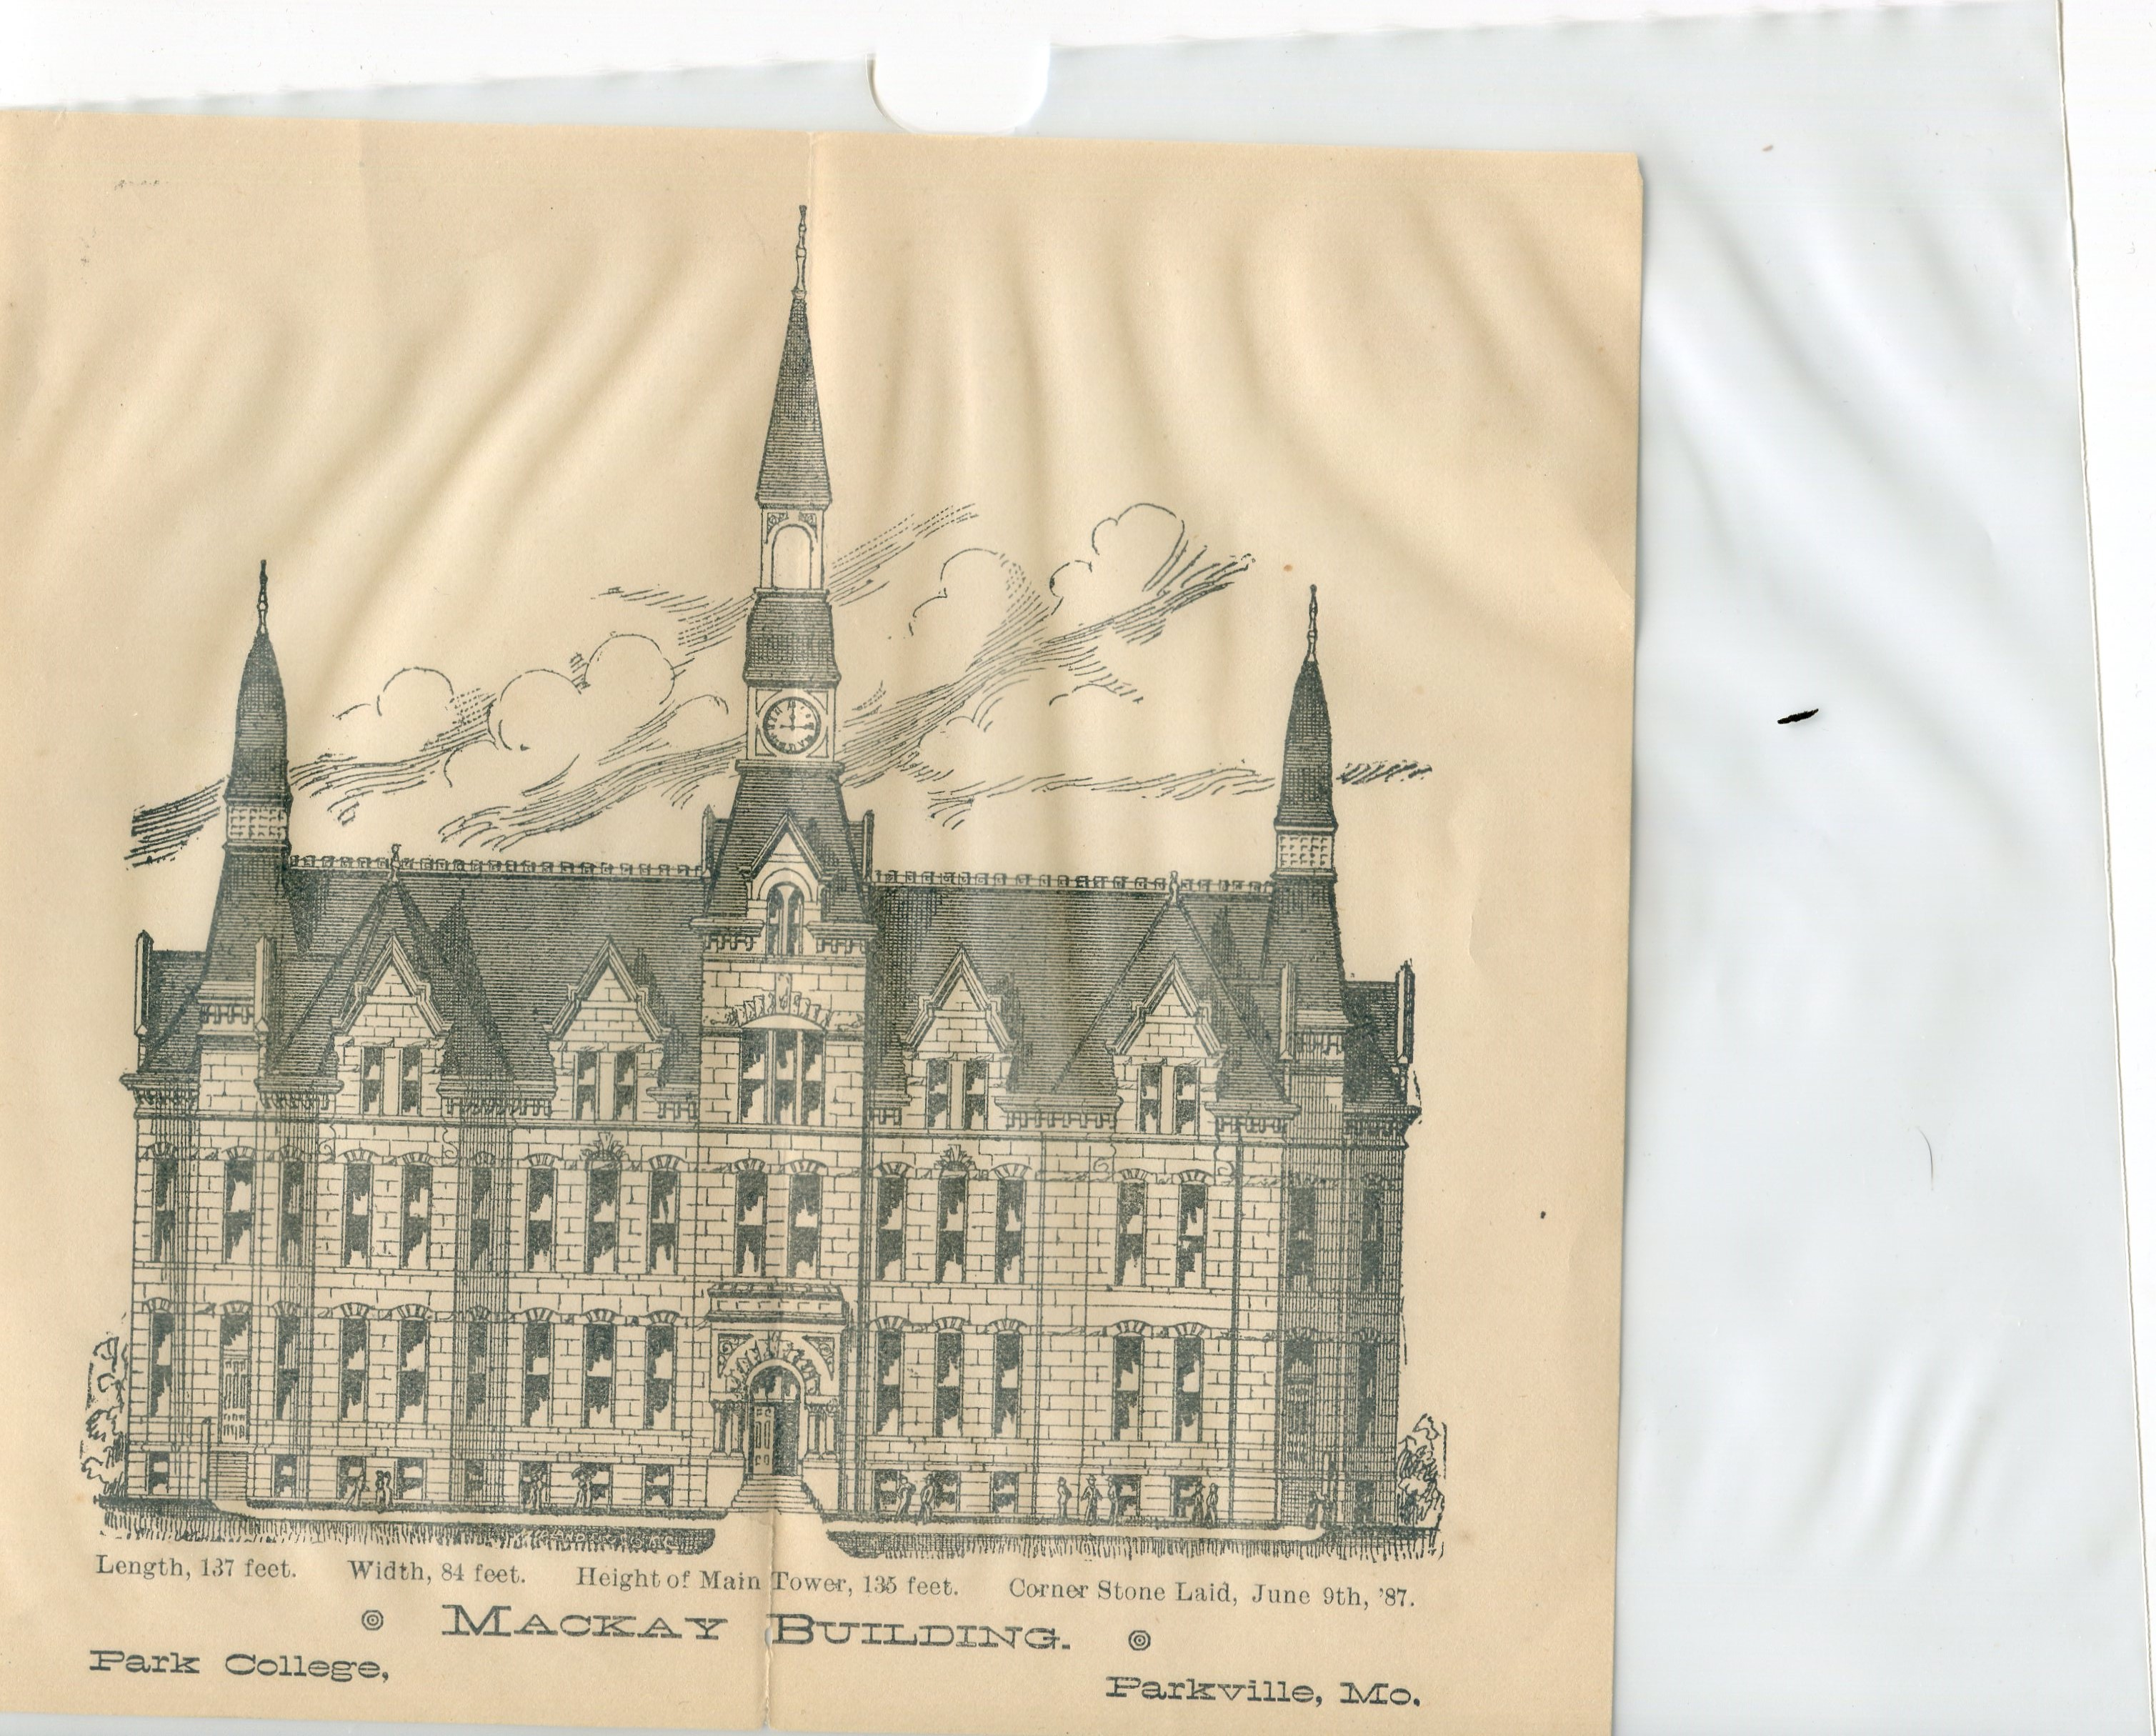 The concept drawing of what Mackay Hall would look like when it was completed